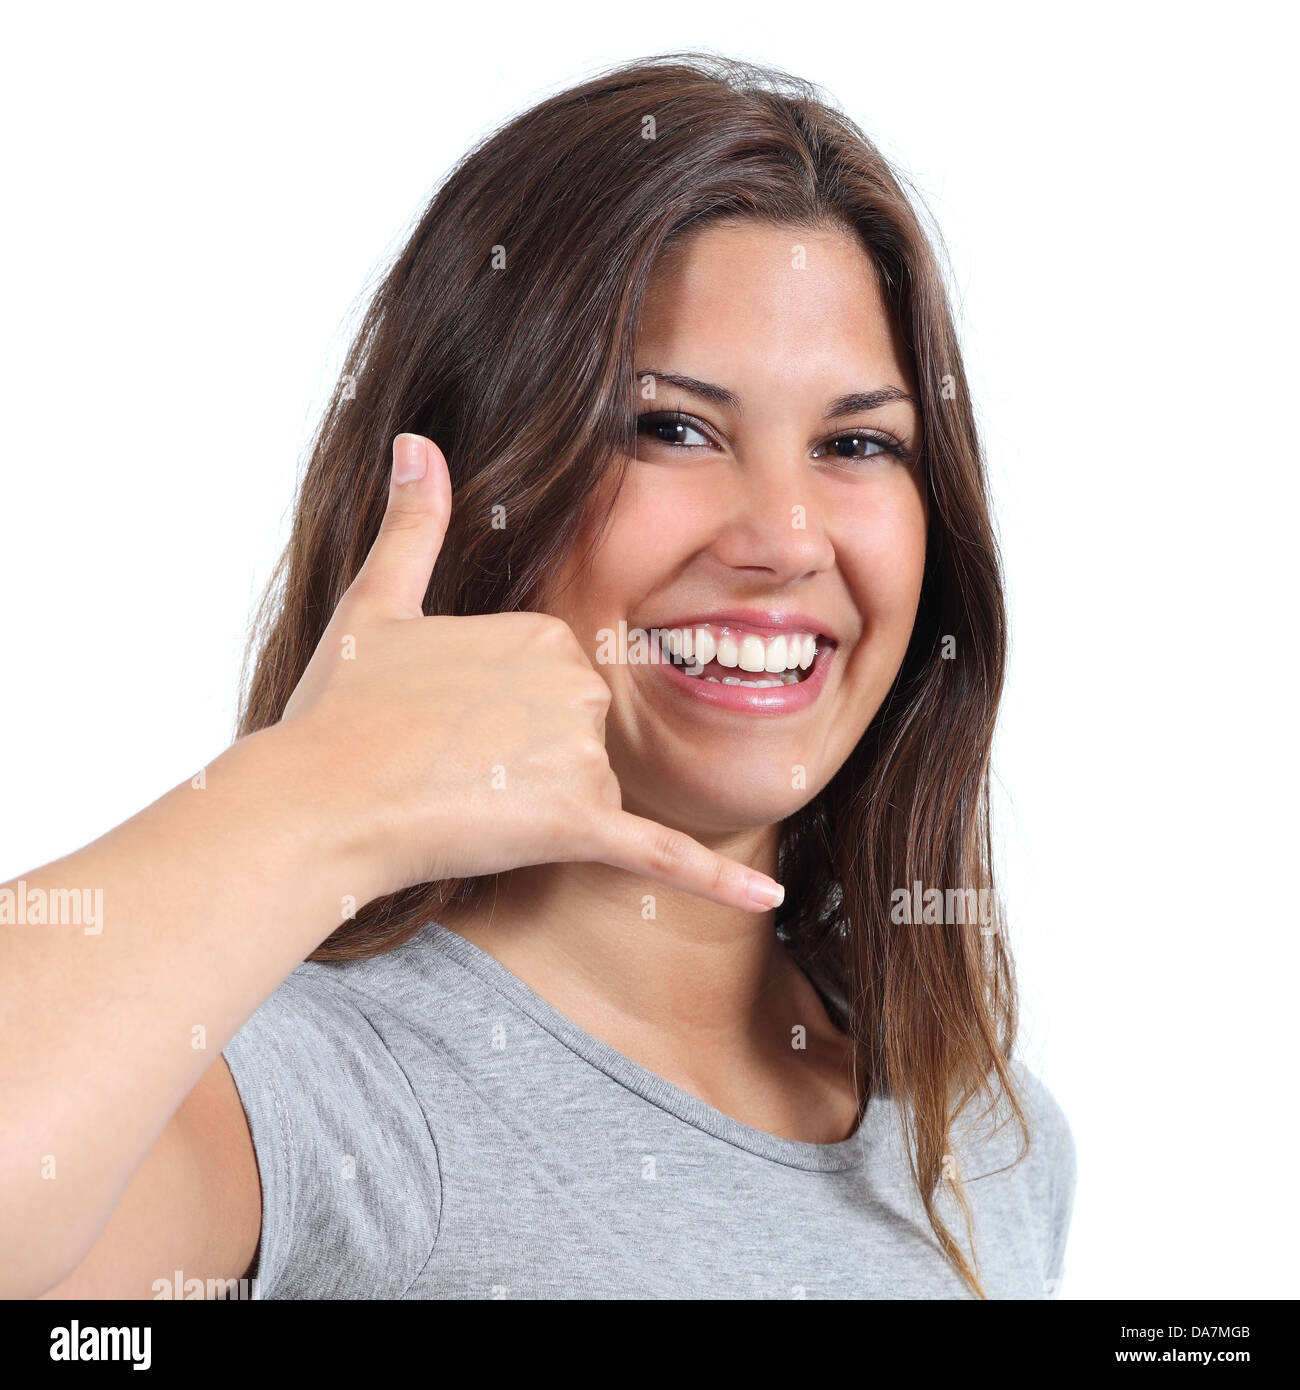 Attractive teenager girl making call me gesture with her hand isolated on a white background - Stock Image